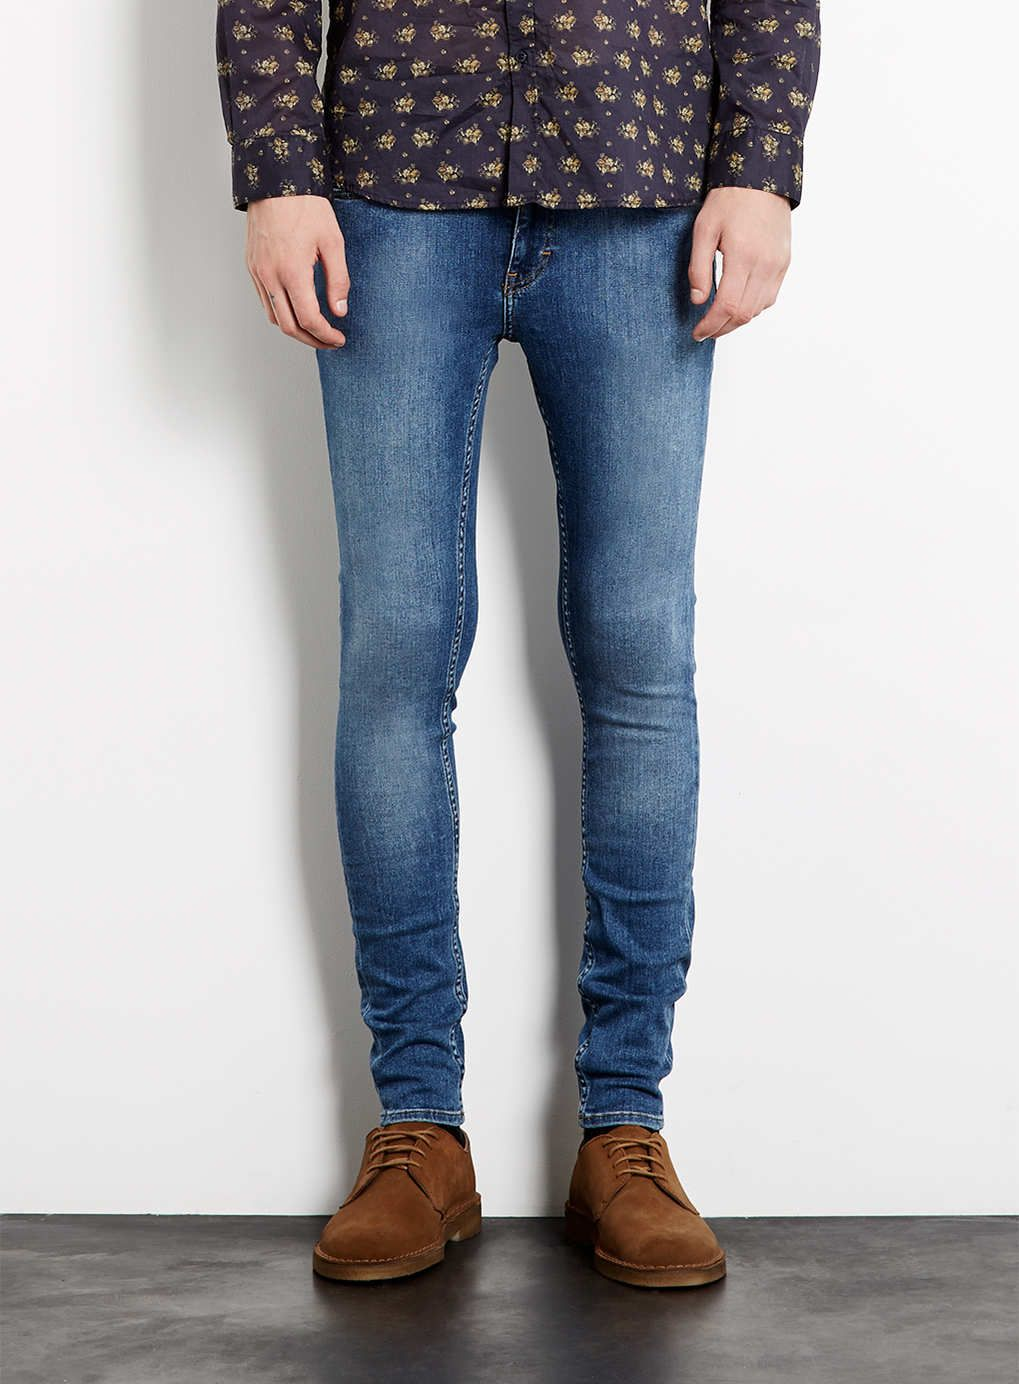 Abercrombie and Fitch Super Skinny Jeans, Men | Wish list ...